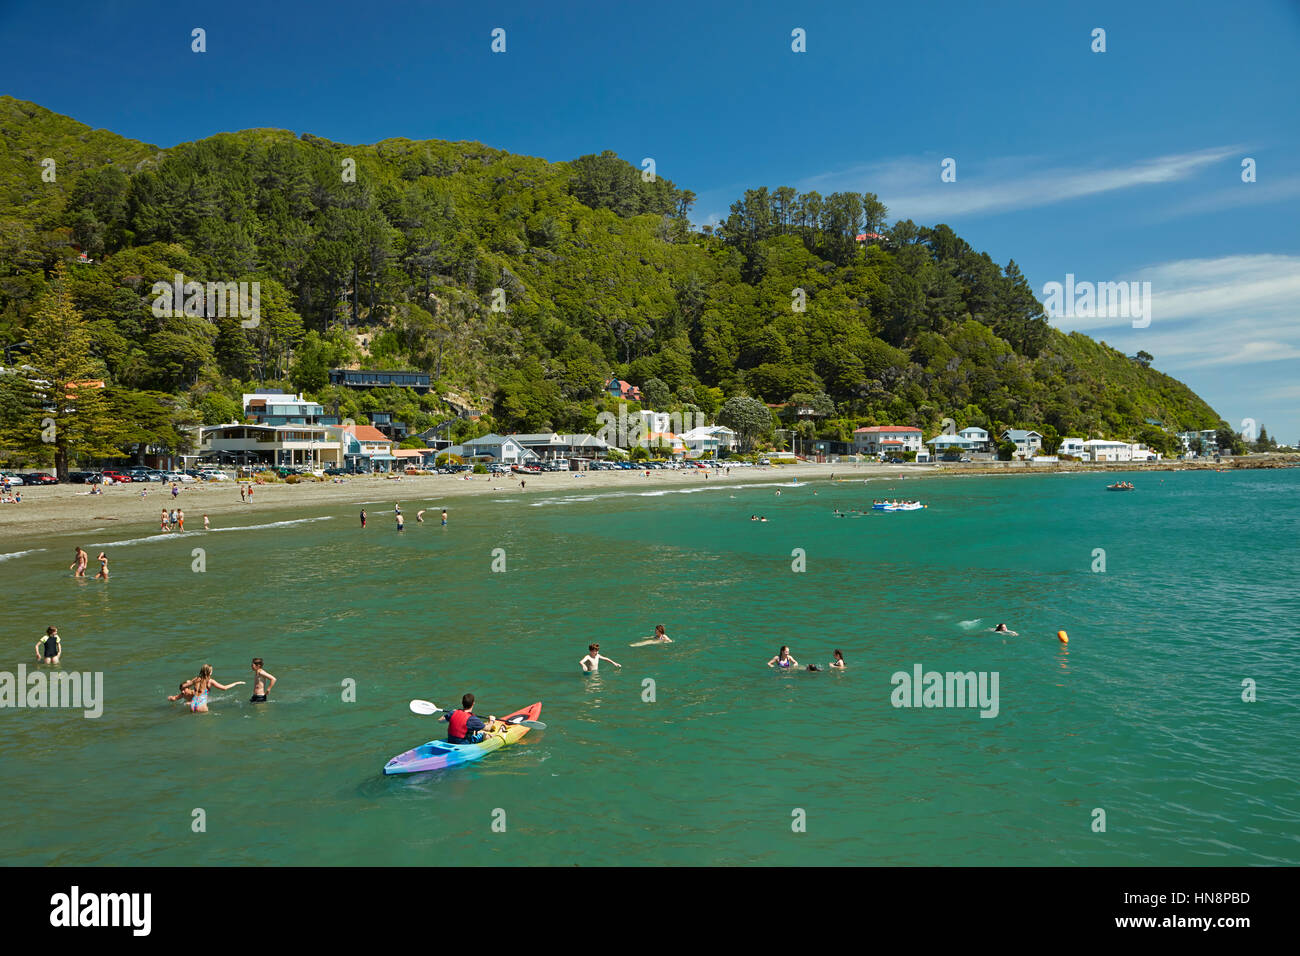 Kayaker and swimmers, Days Bay, Eastbourne, Wellington, North Island, New Zealand - Stock Image